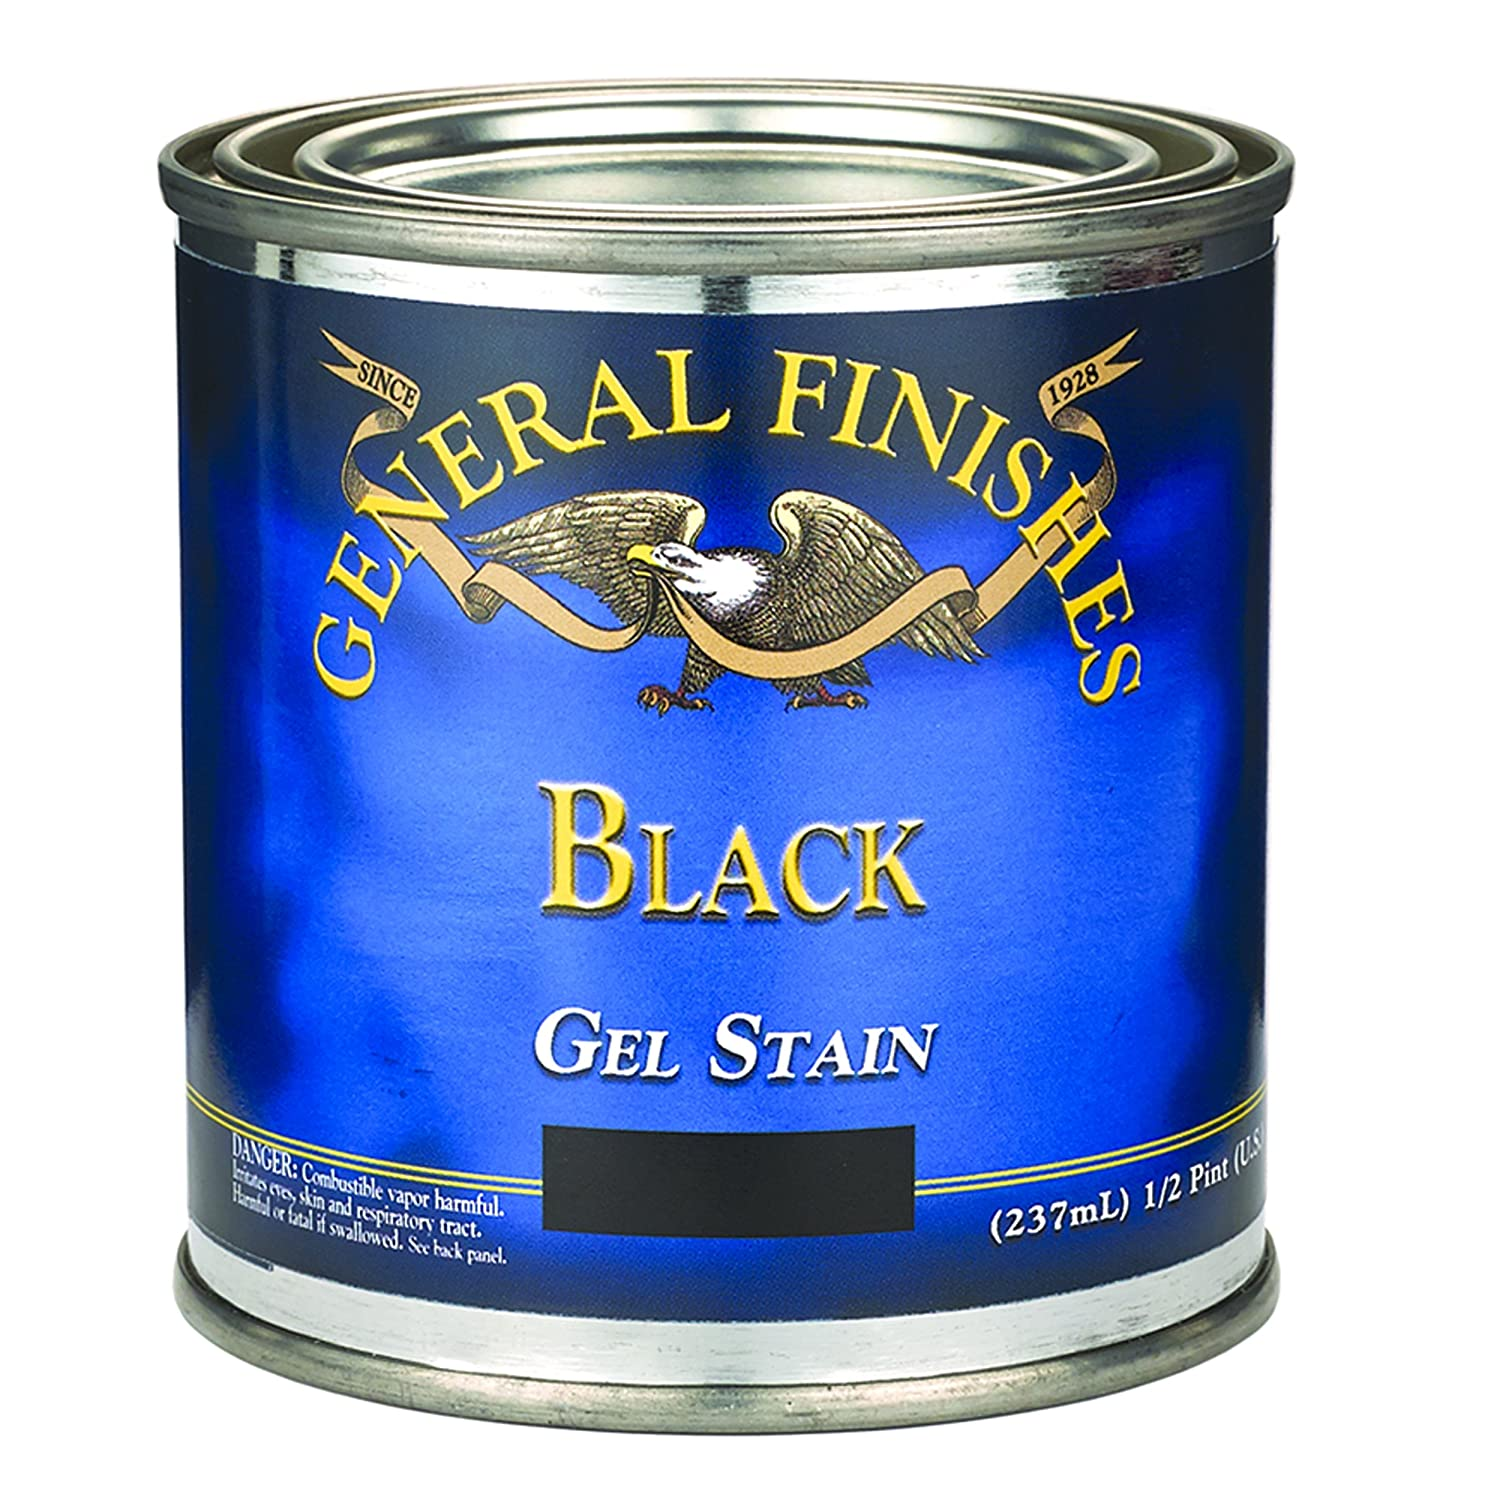 General Finishes BLH Gel Stain, half pint, Black